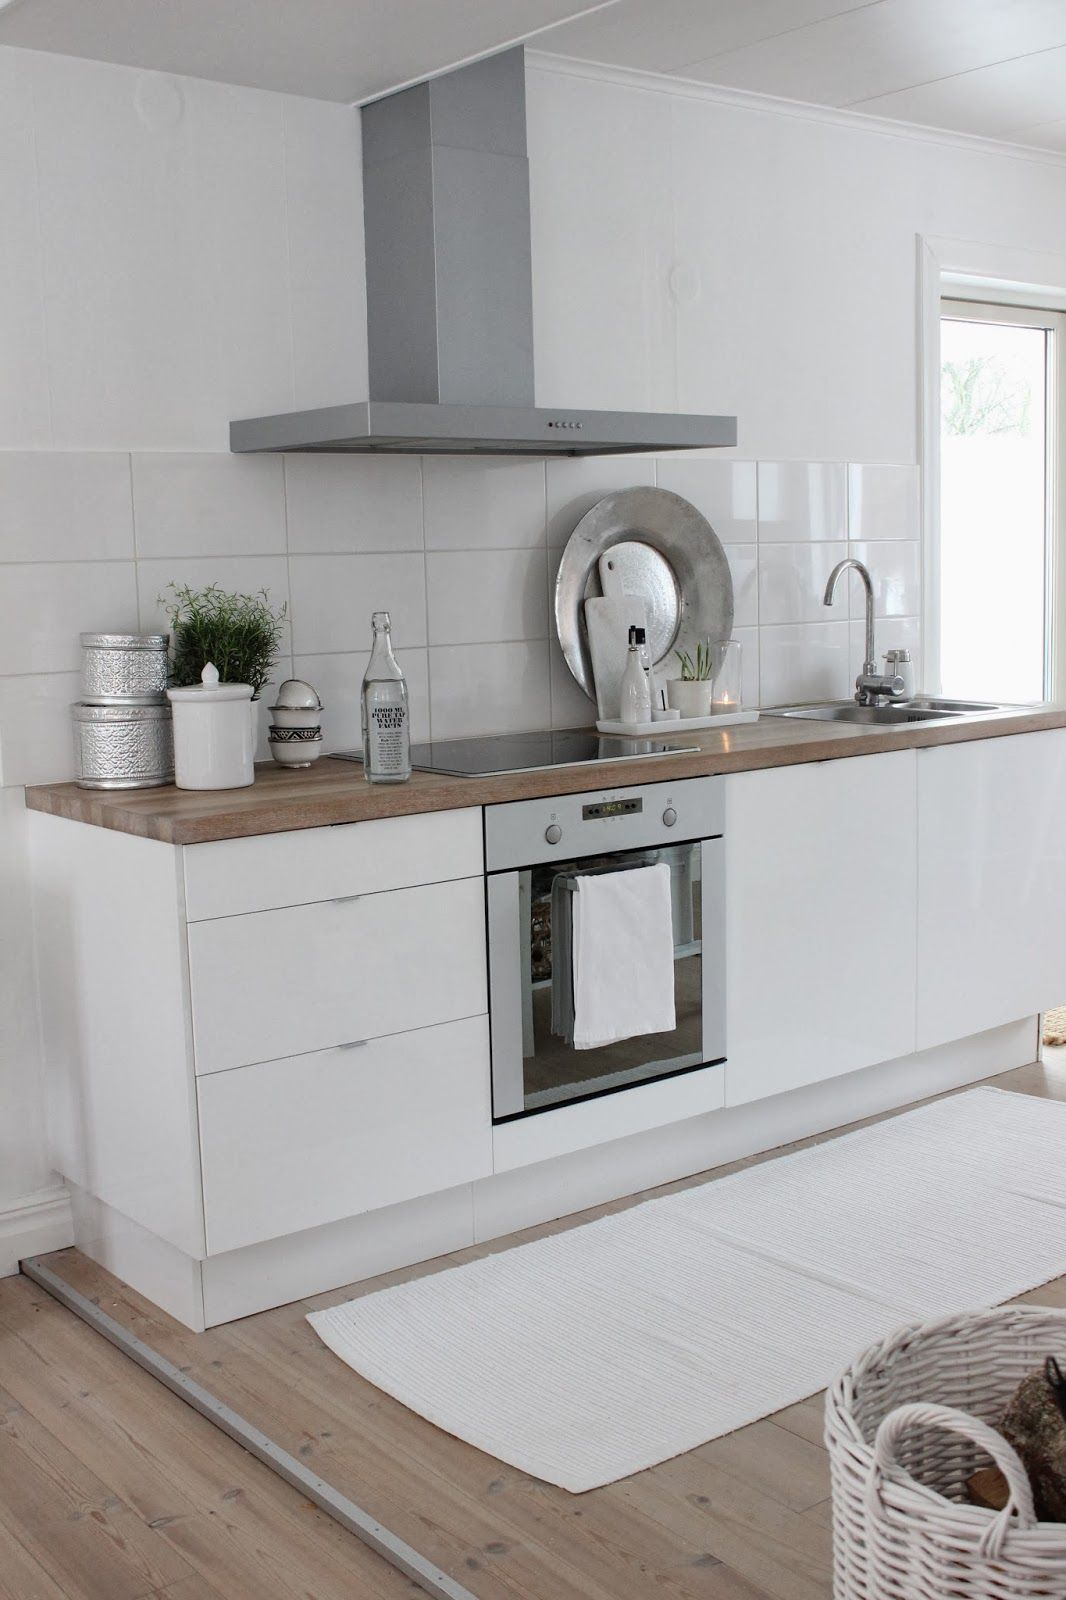 13. Tiny white contemporary kitchen with wooden